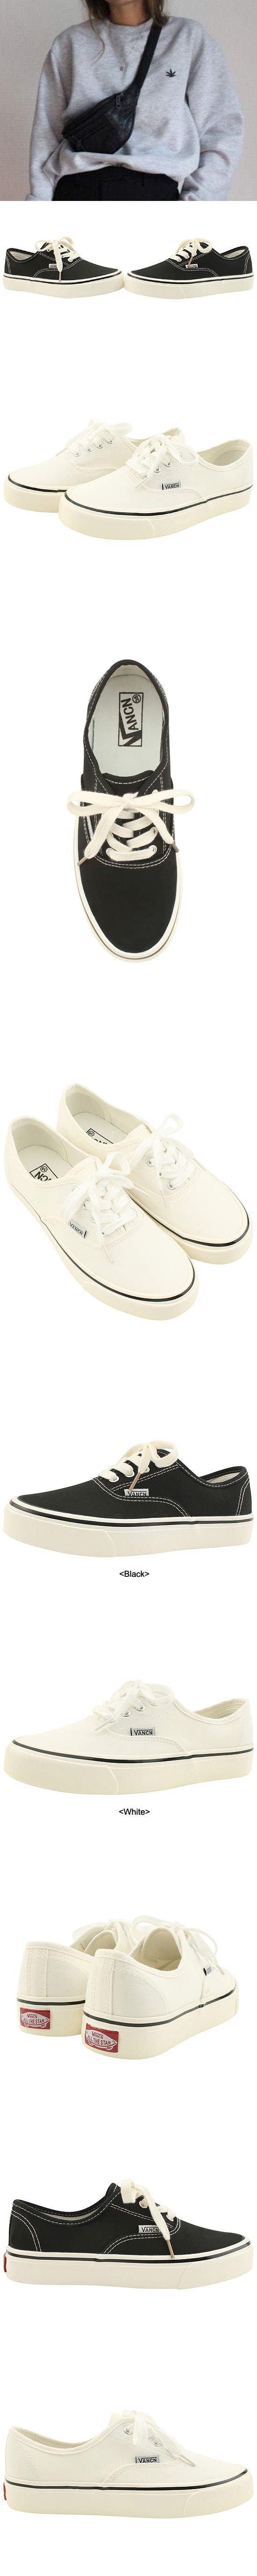 Daily Canvas Shoelace Sneakers White